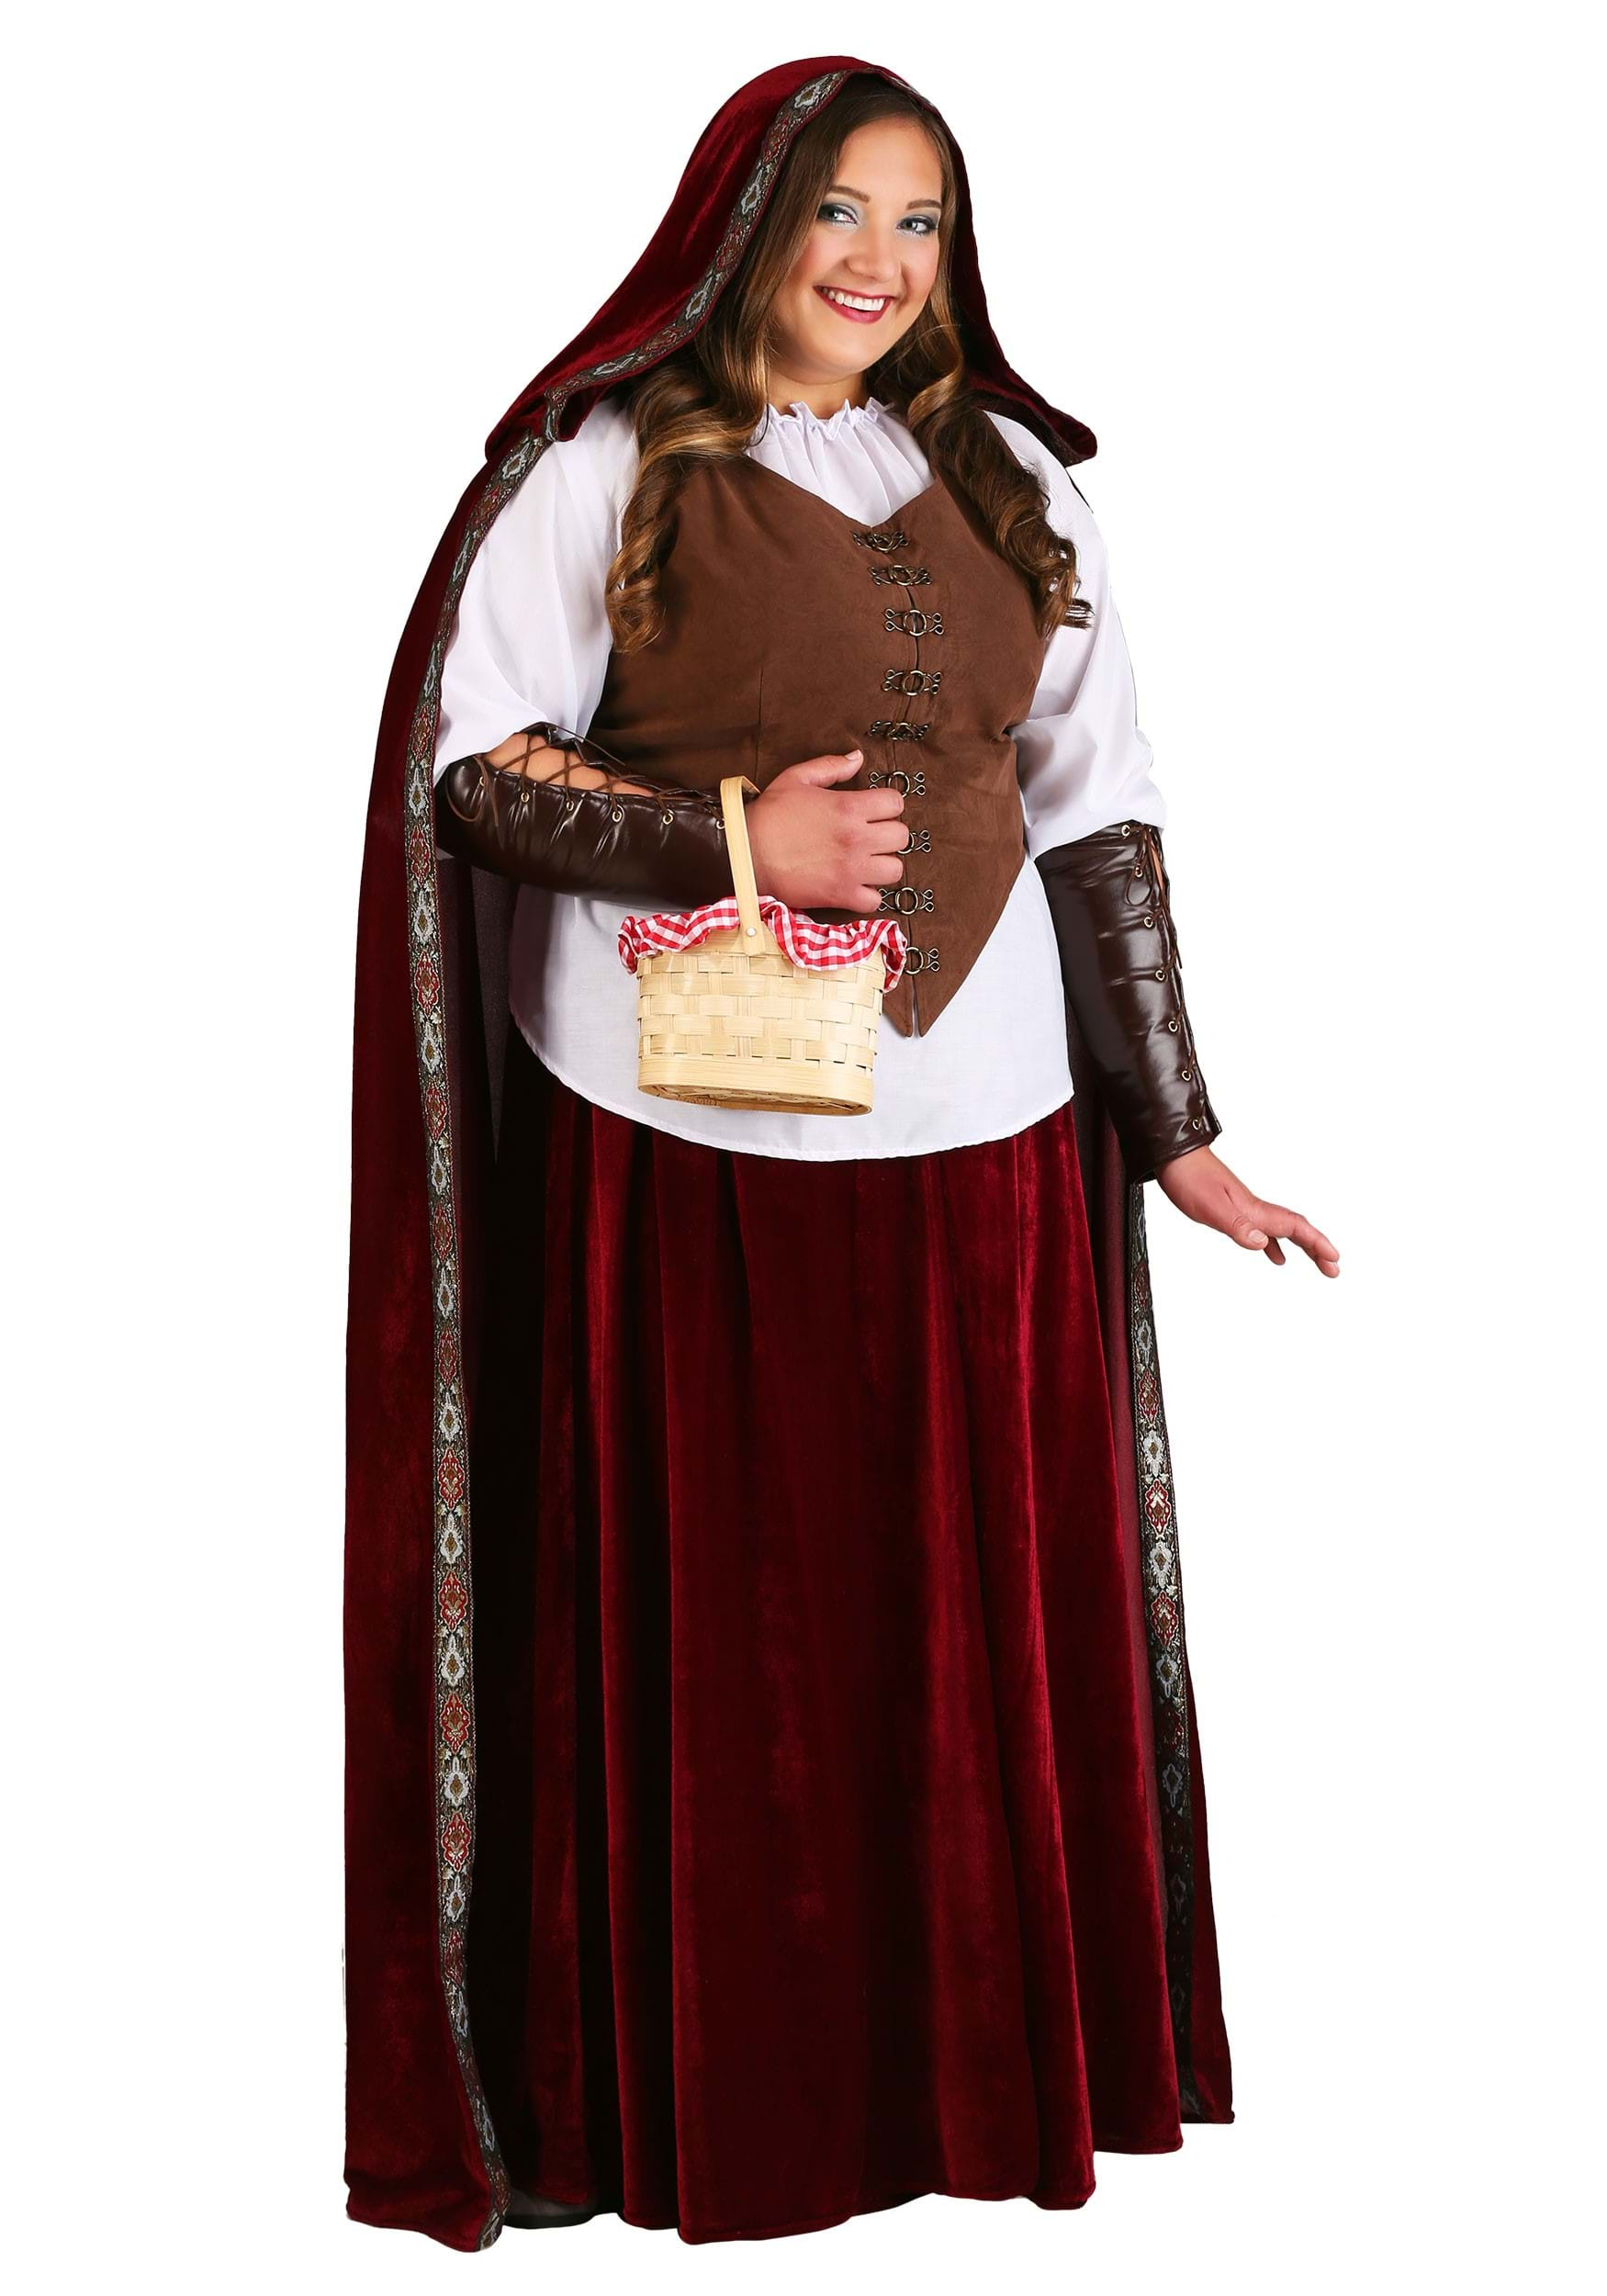 Deluxe Red Riding Hood Costume For Plus Size